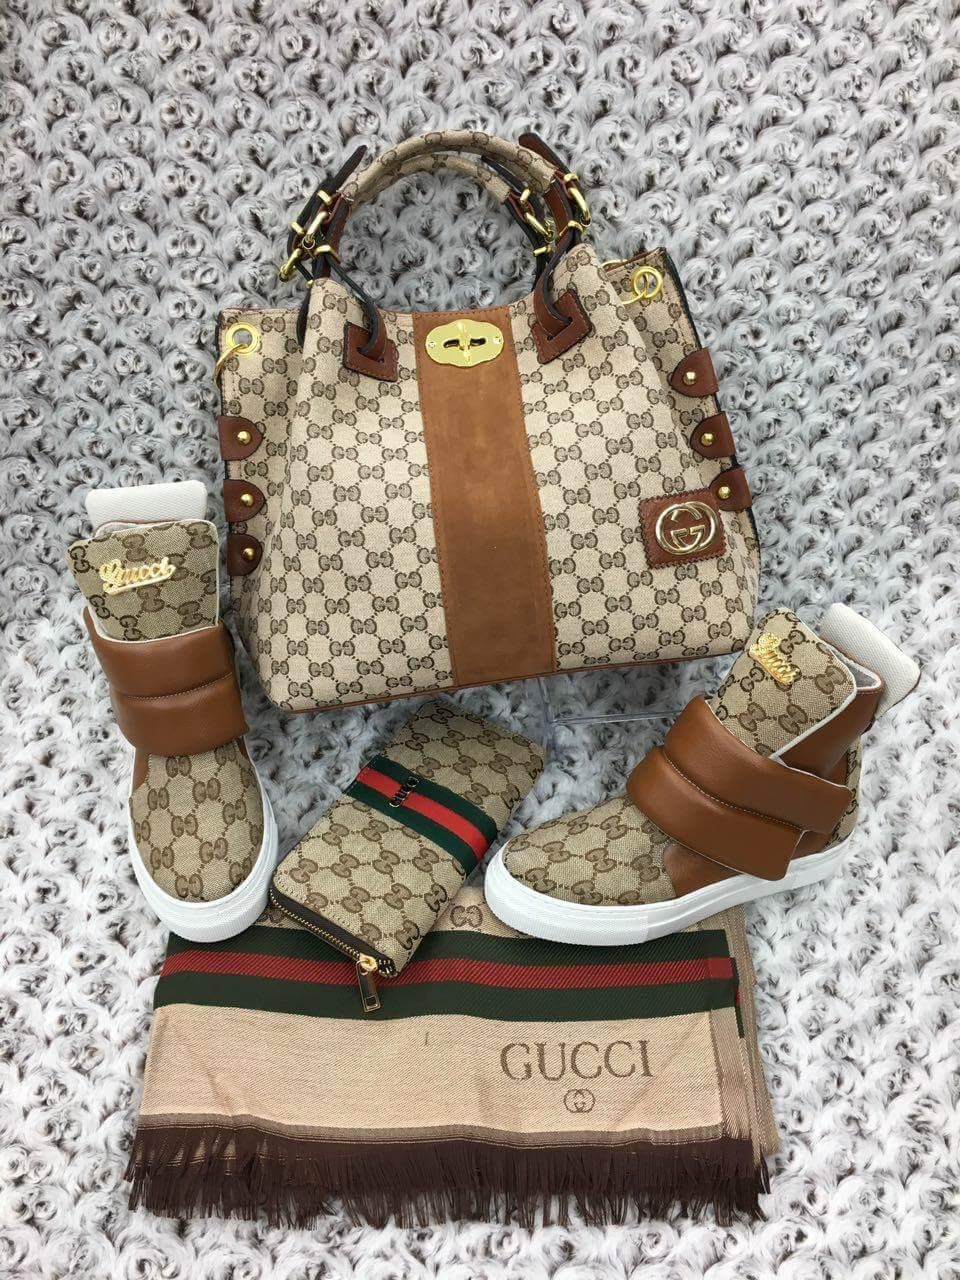 4b9591d4e36ab Purse and wallet, yes please!!! I'll have to pass on those shoes though!  #pursesandwallets